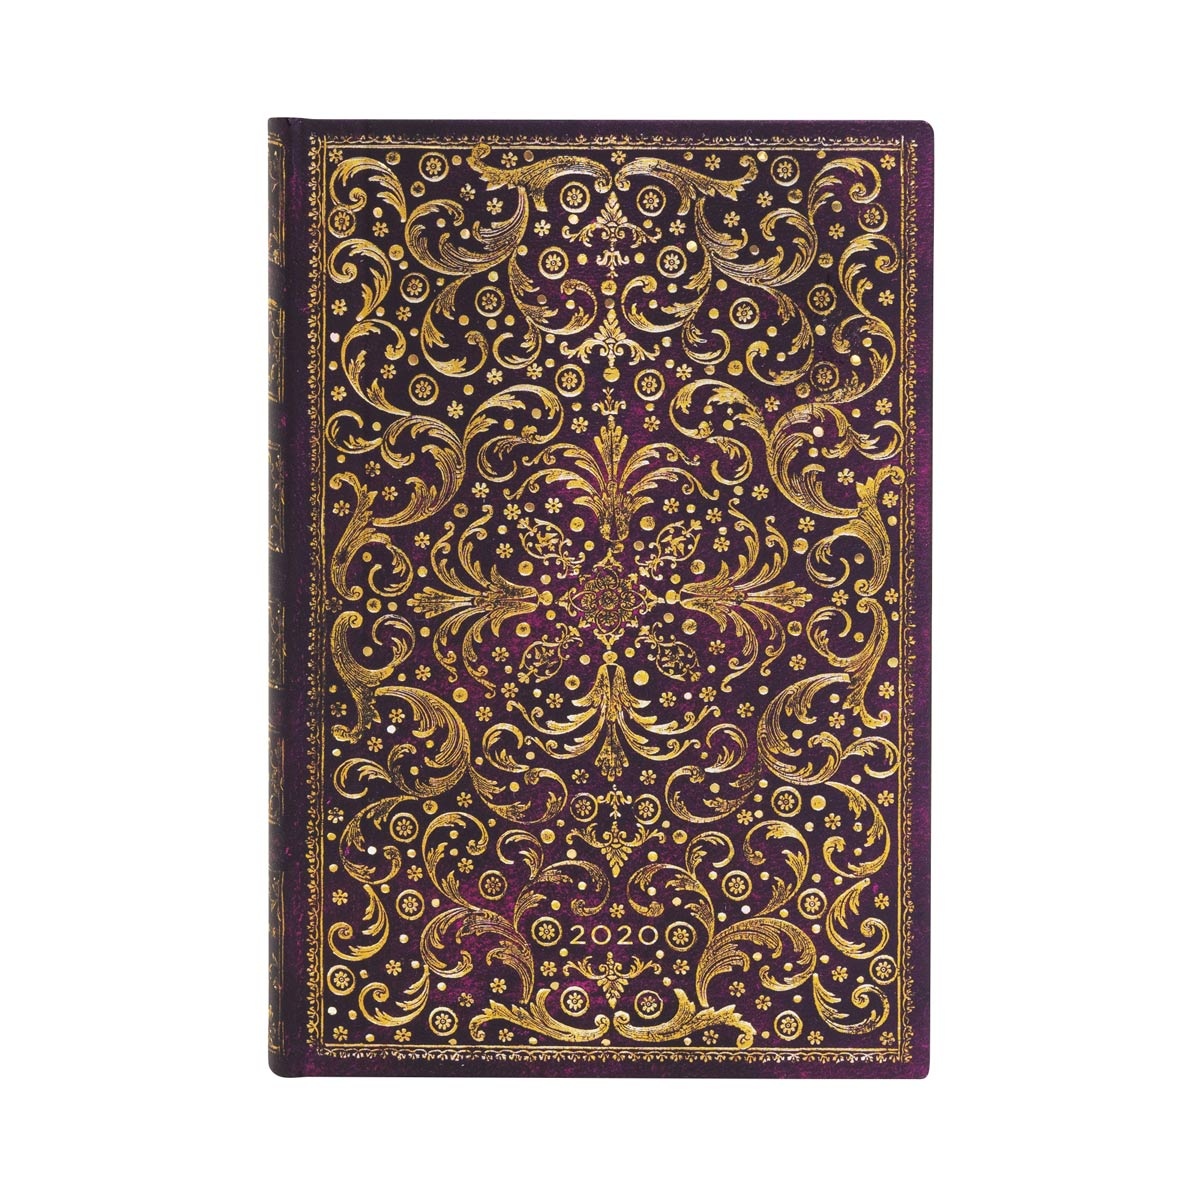 Paperblanks Mini Aurelia 2020 Day-At-A-Time Planner